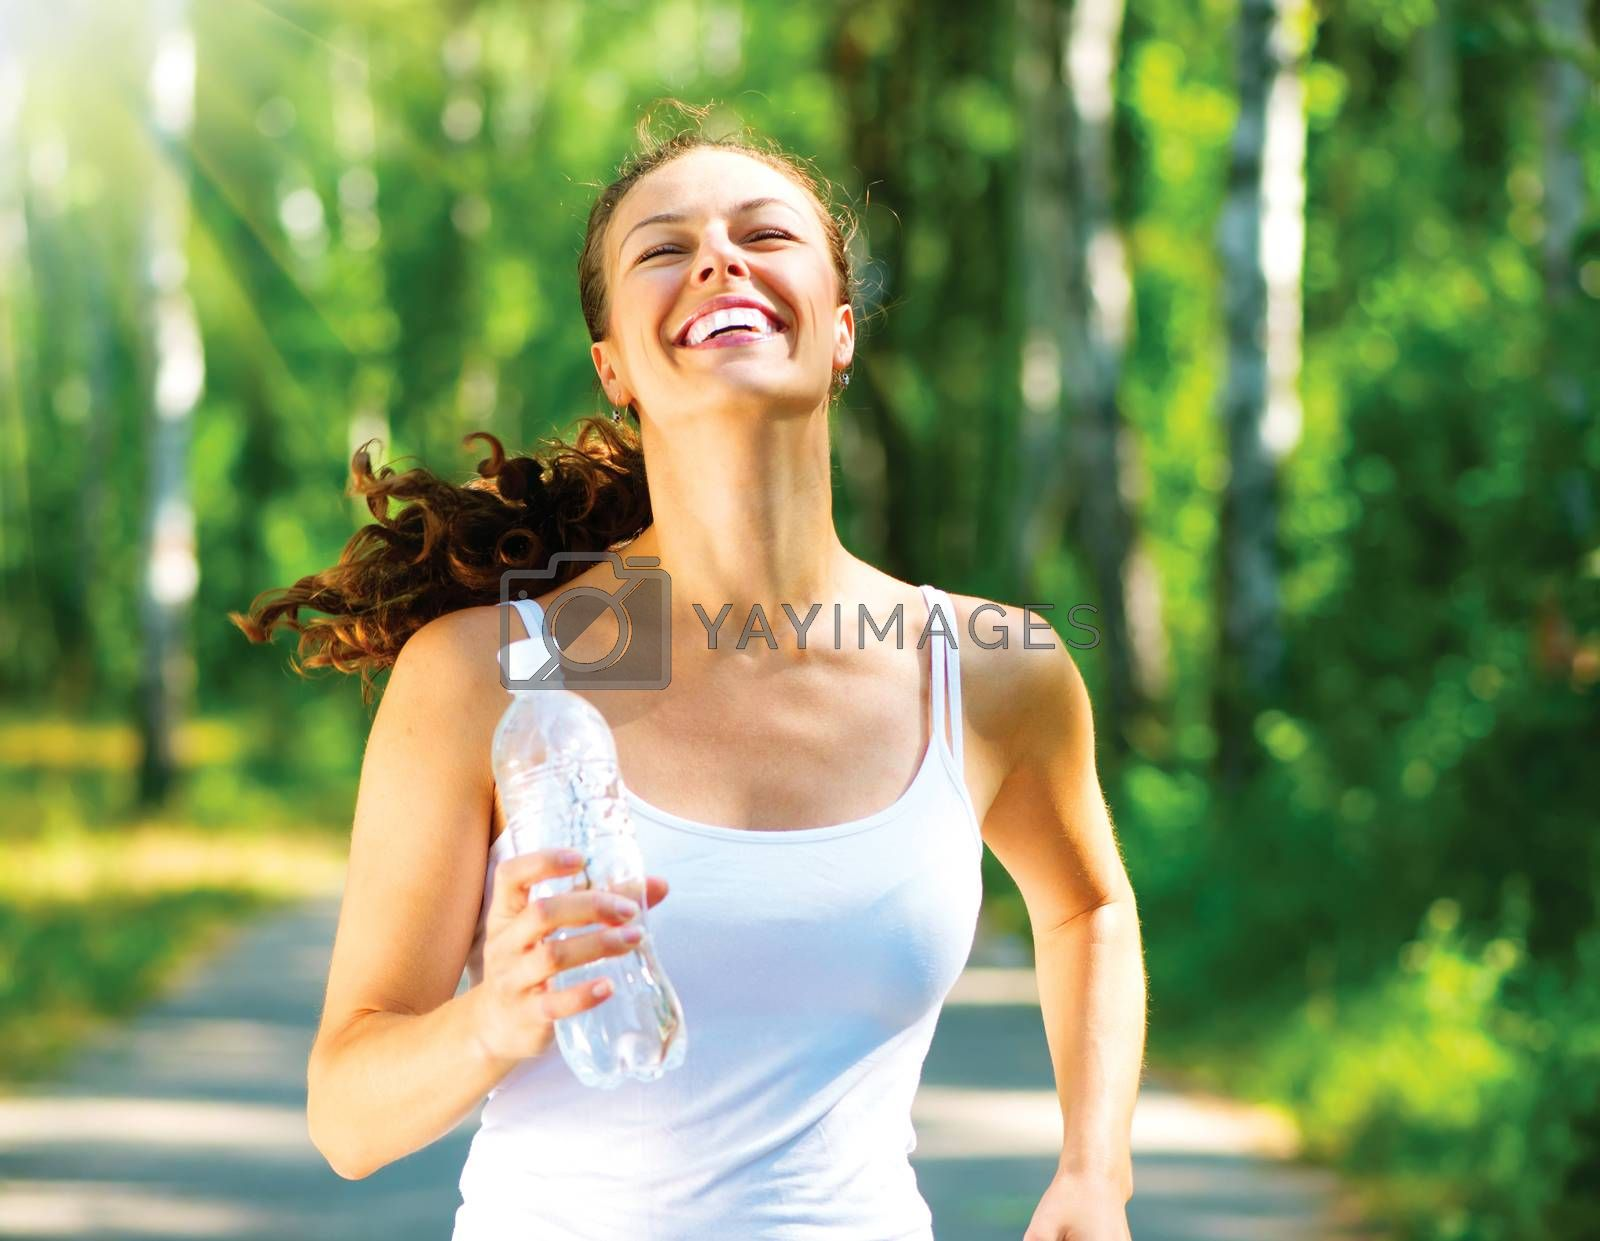 Running woman. Female Runner Jogging in a Park by SubbotinaA